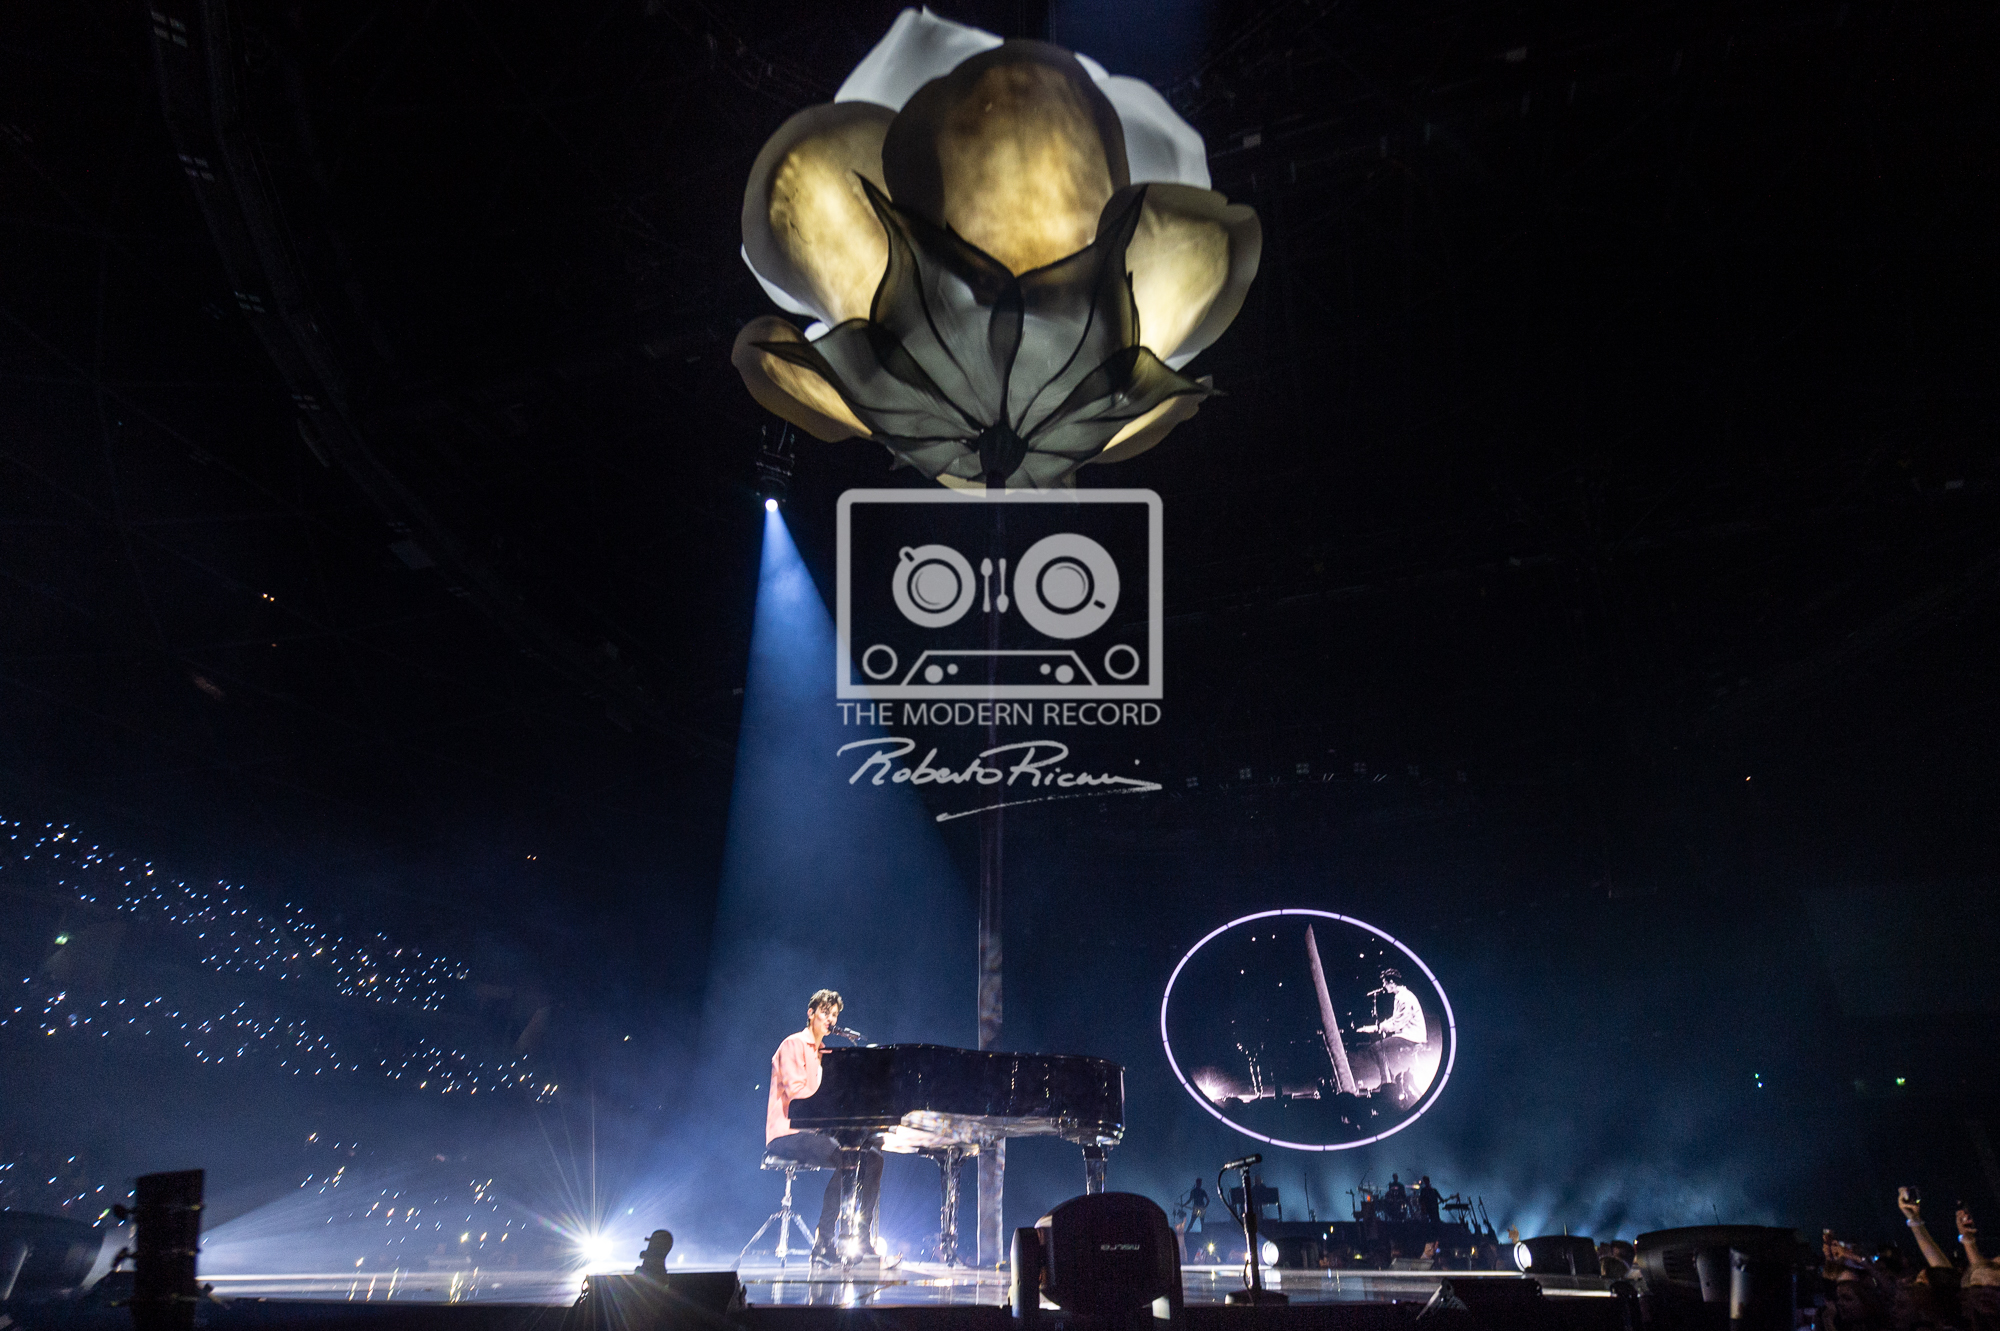 SHAWN MENDES PERFORMING AT GLASGOW'S SSE HYDRO - 06.04.2019  PICTURE BY: ROBERTO RICCIUTI PHOTOGRAPHY